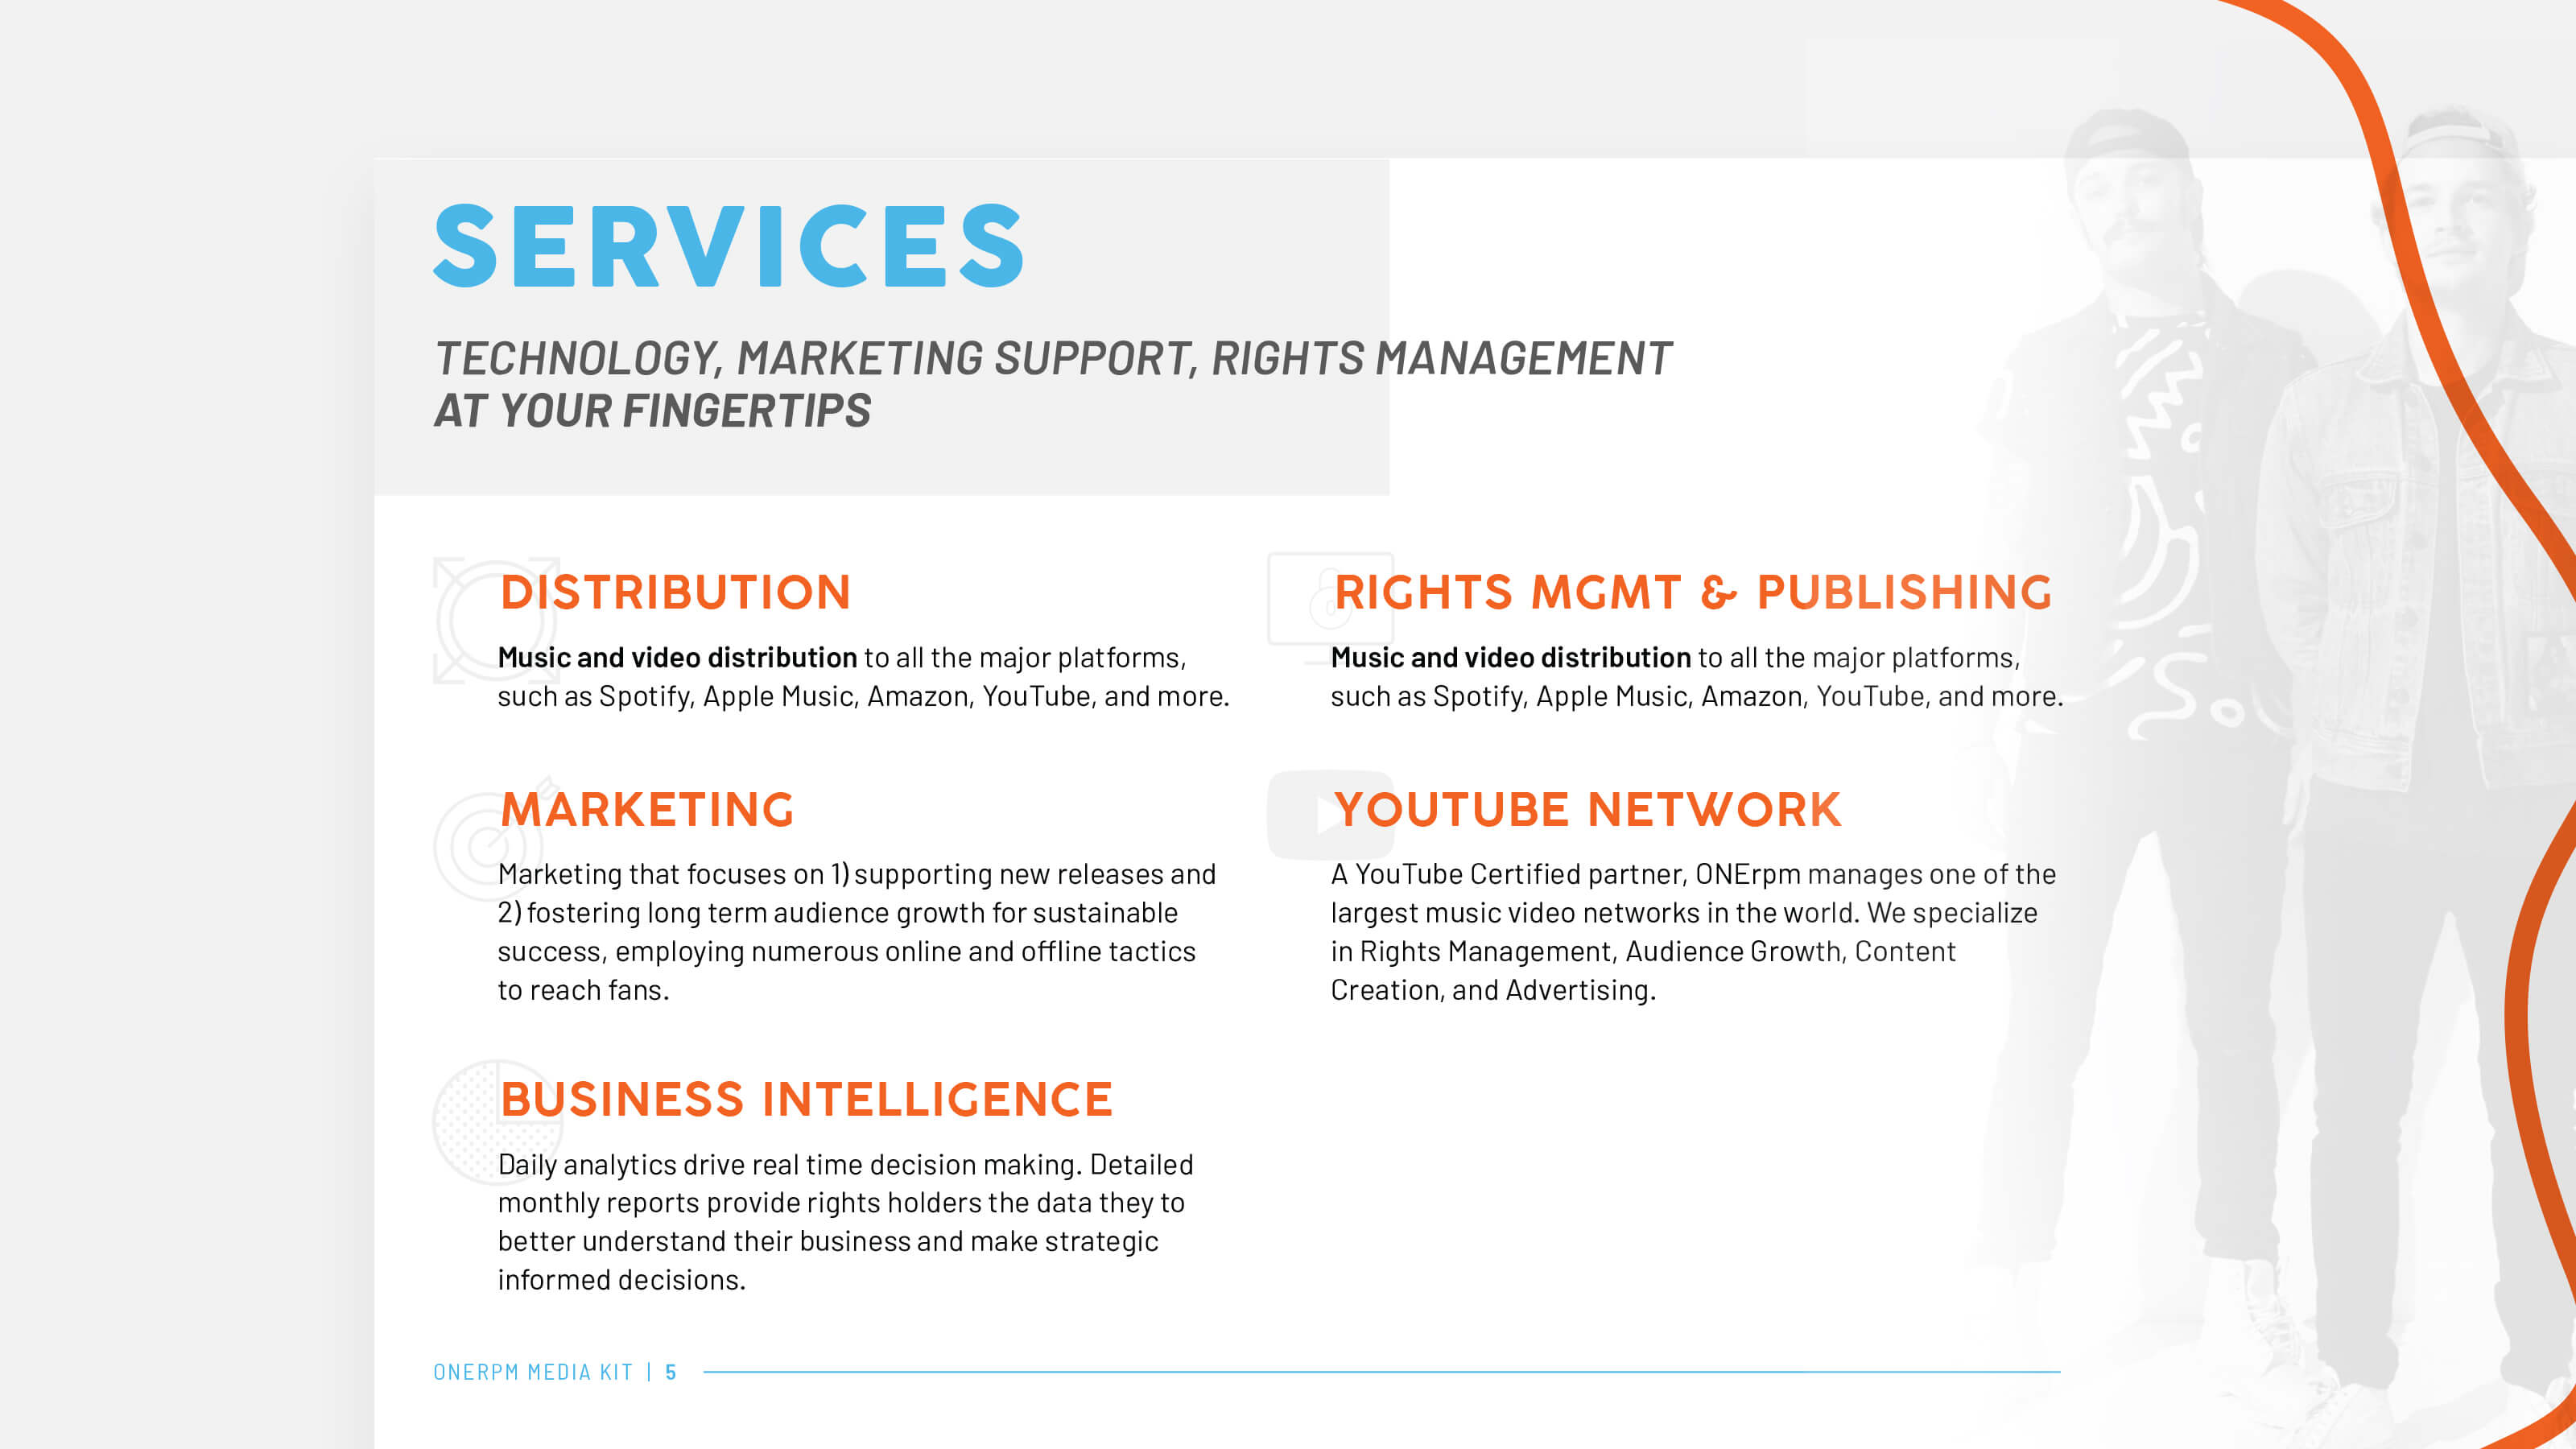 ONErpm services with Cherub for media kit by Ben Fieker's Fieker Brothers website